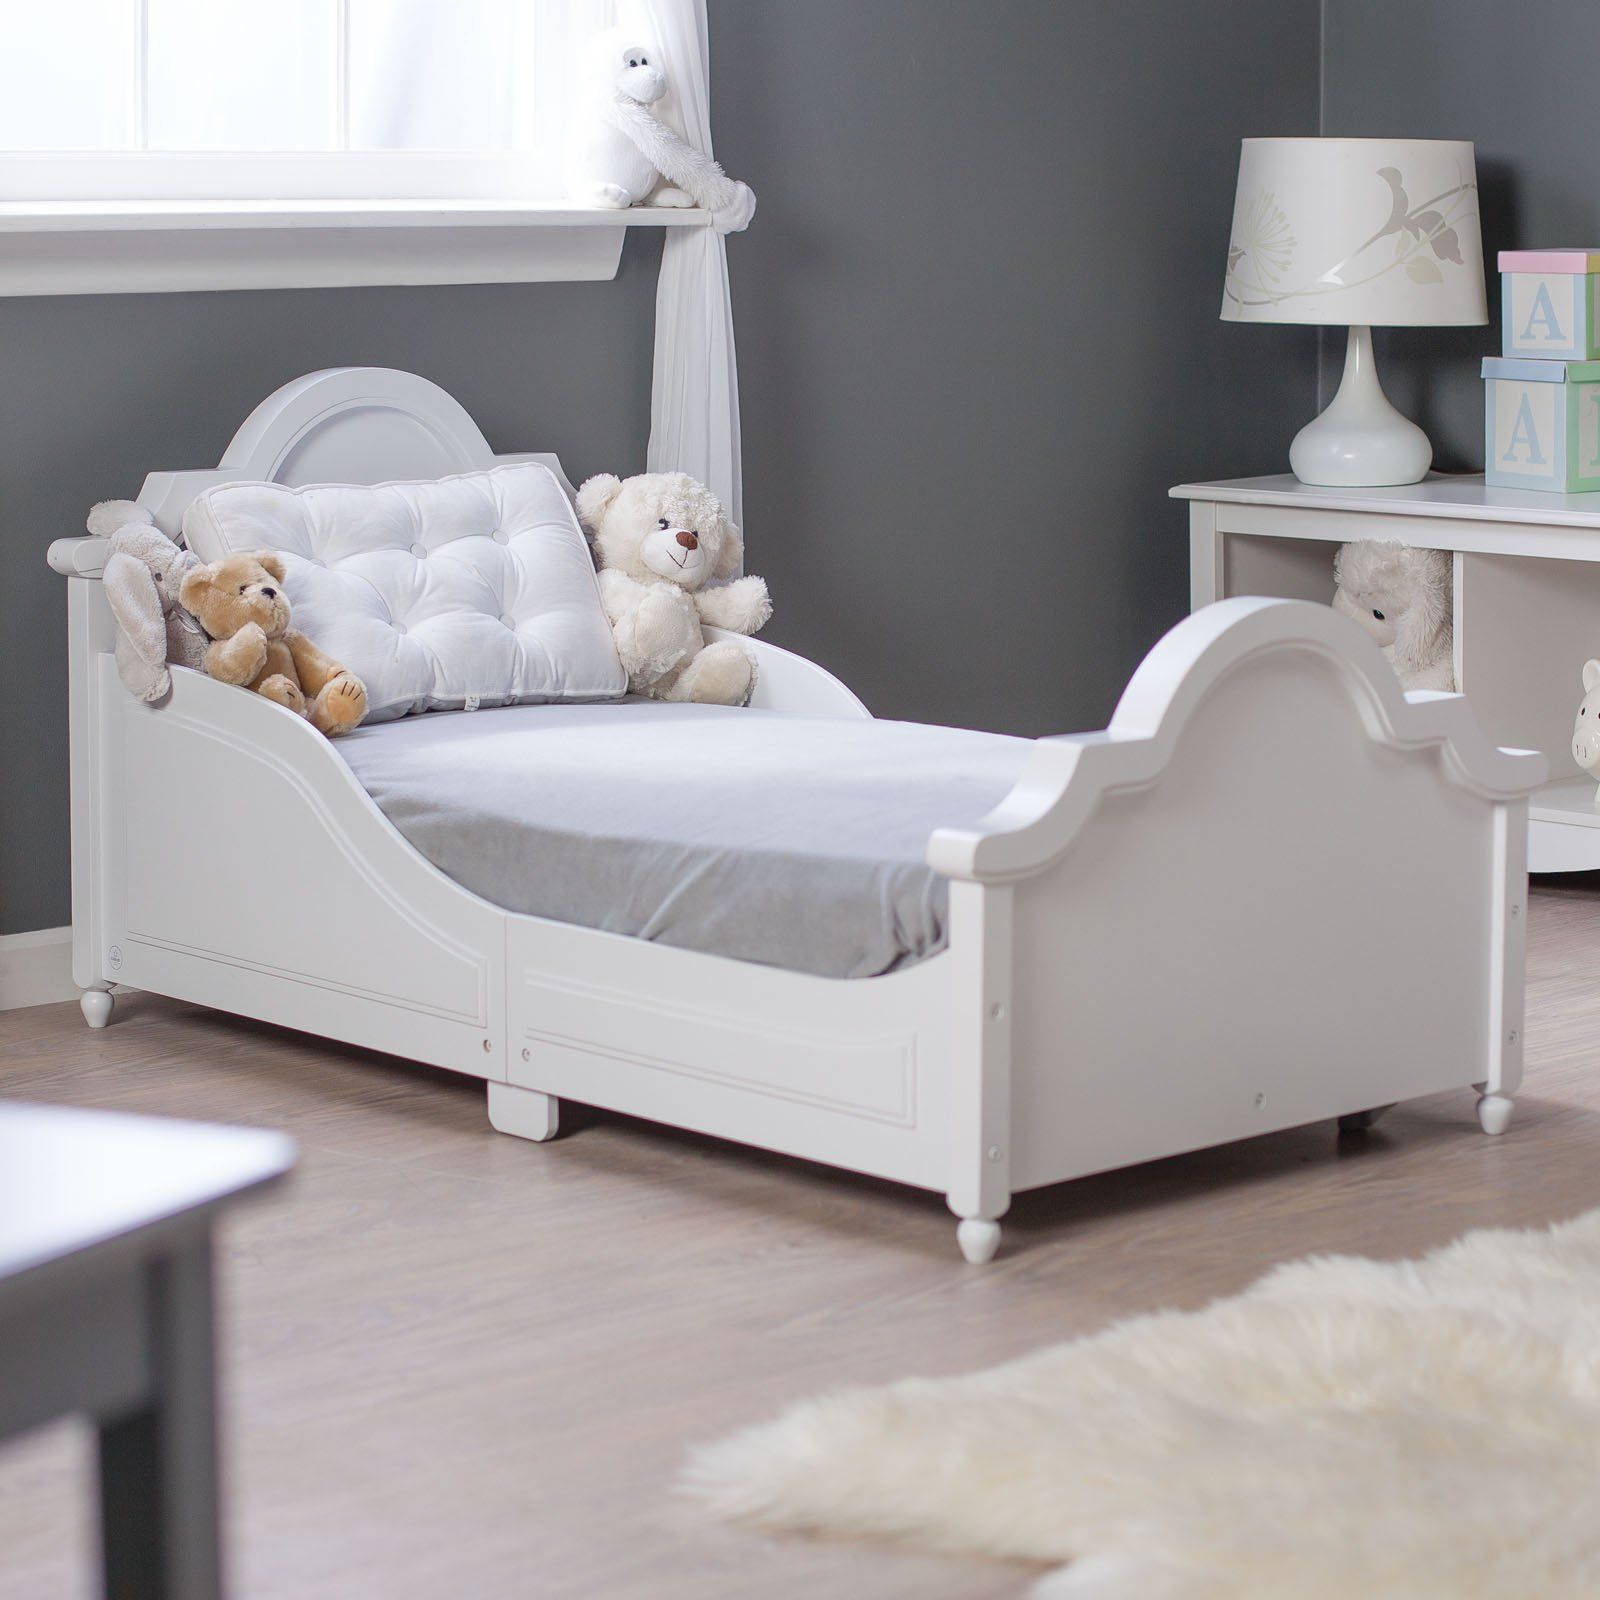 Kidkraft Raleigh Toddler Bed White Help your young one